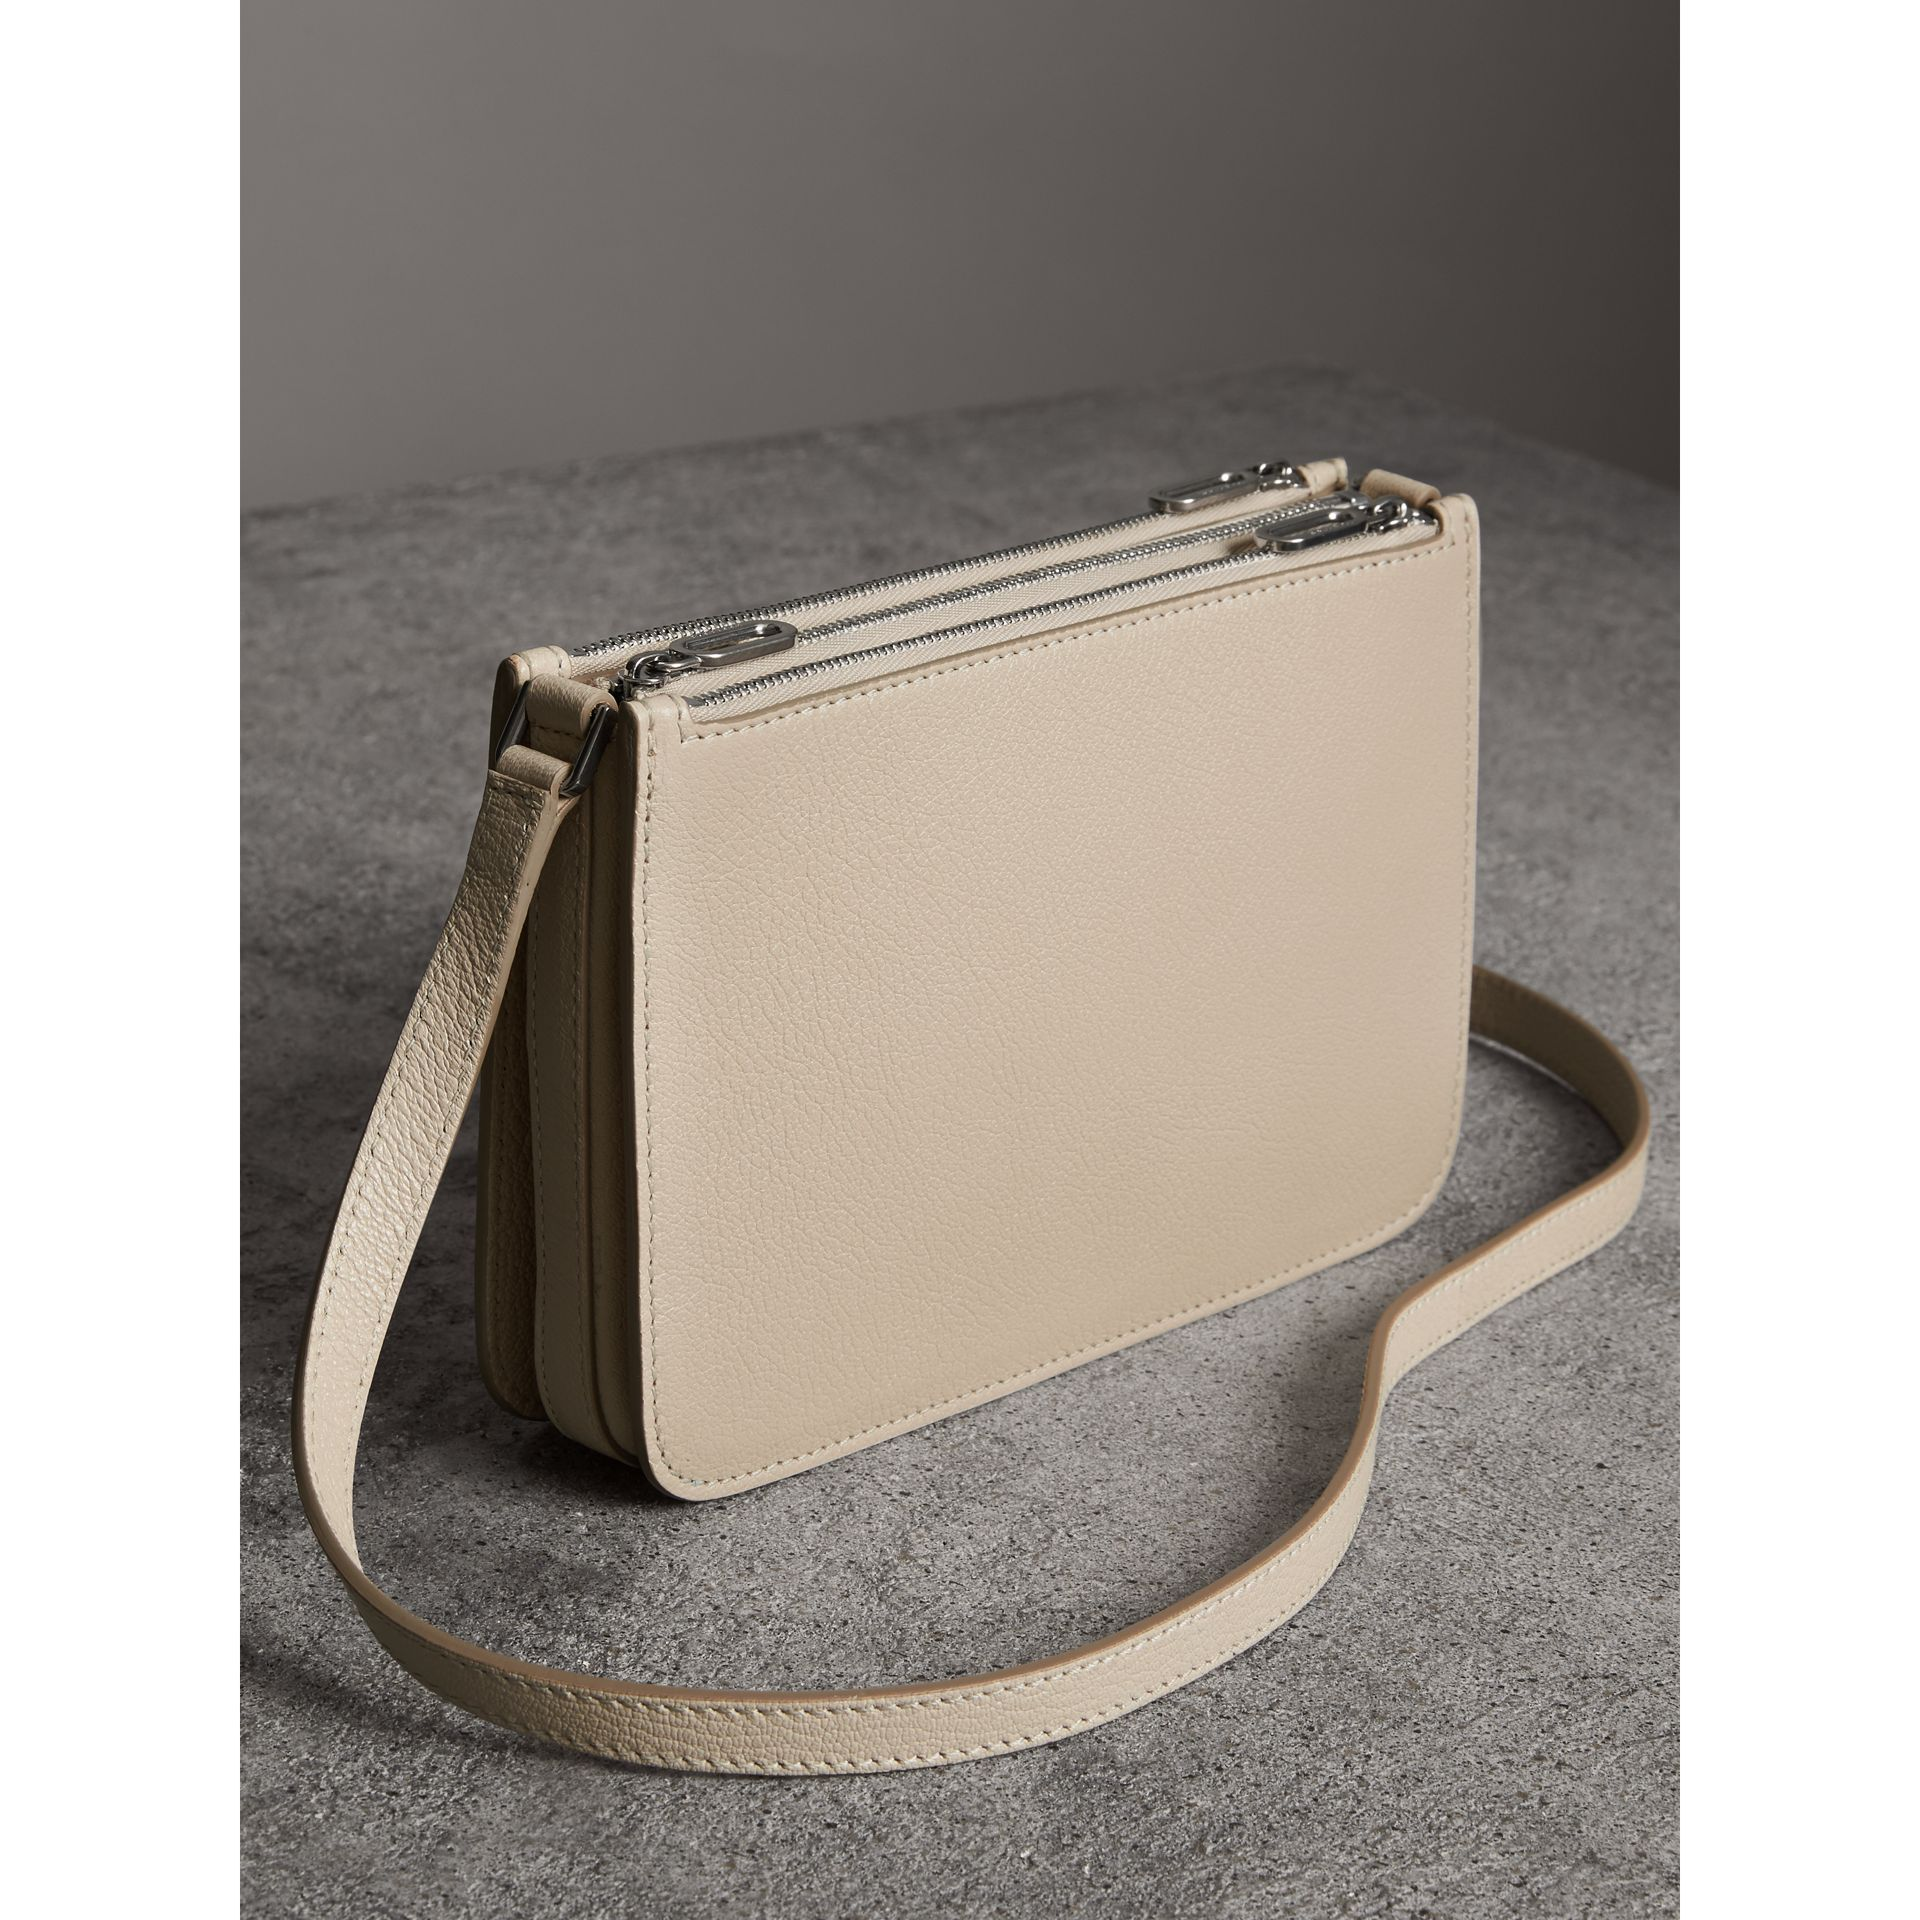 Triple Zip Grainy Leather Crossbody Bag in Stone - Women | Burberry United Kingdom - gallery image 4